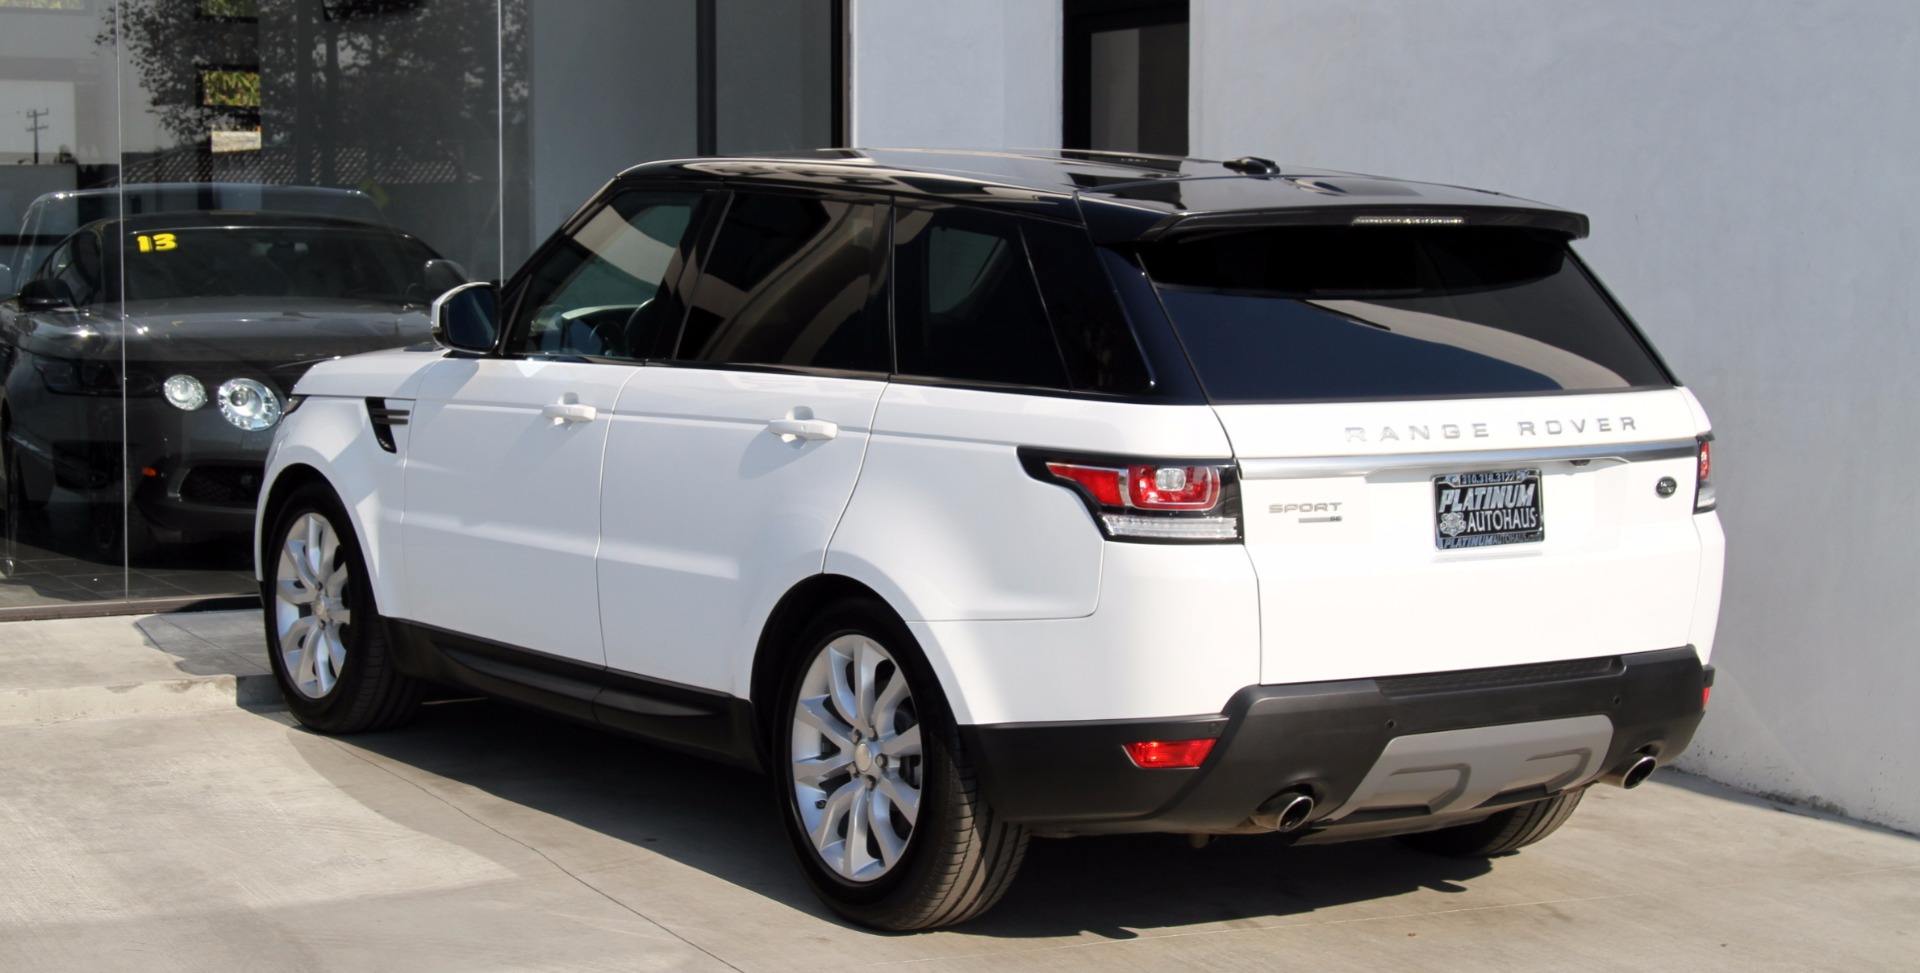 Land Rover For Sale Near Me >> 2015 Land Rover Range Rover Sport SE Stock # 5964 for sale ...